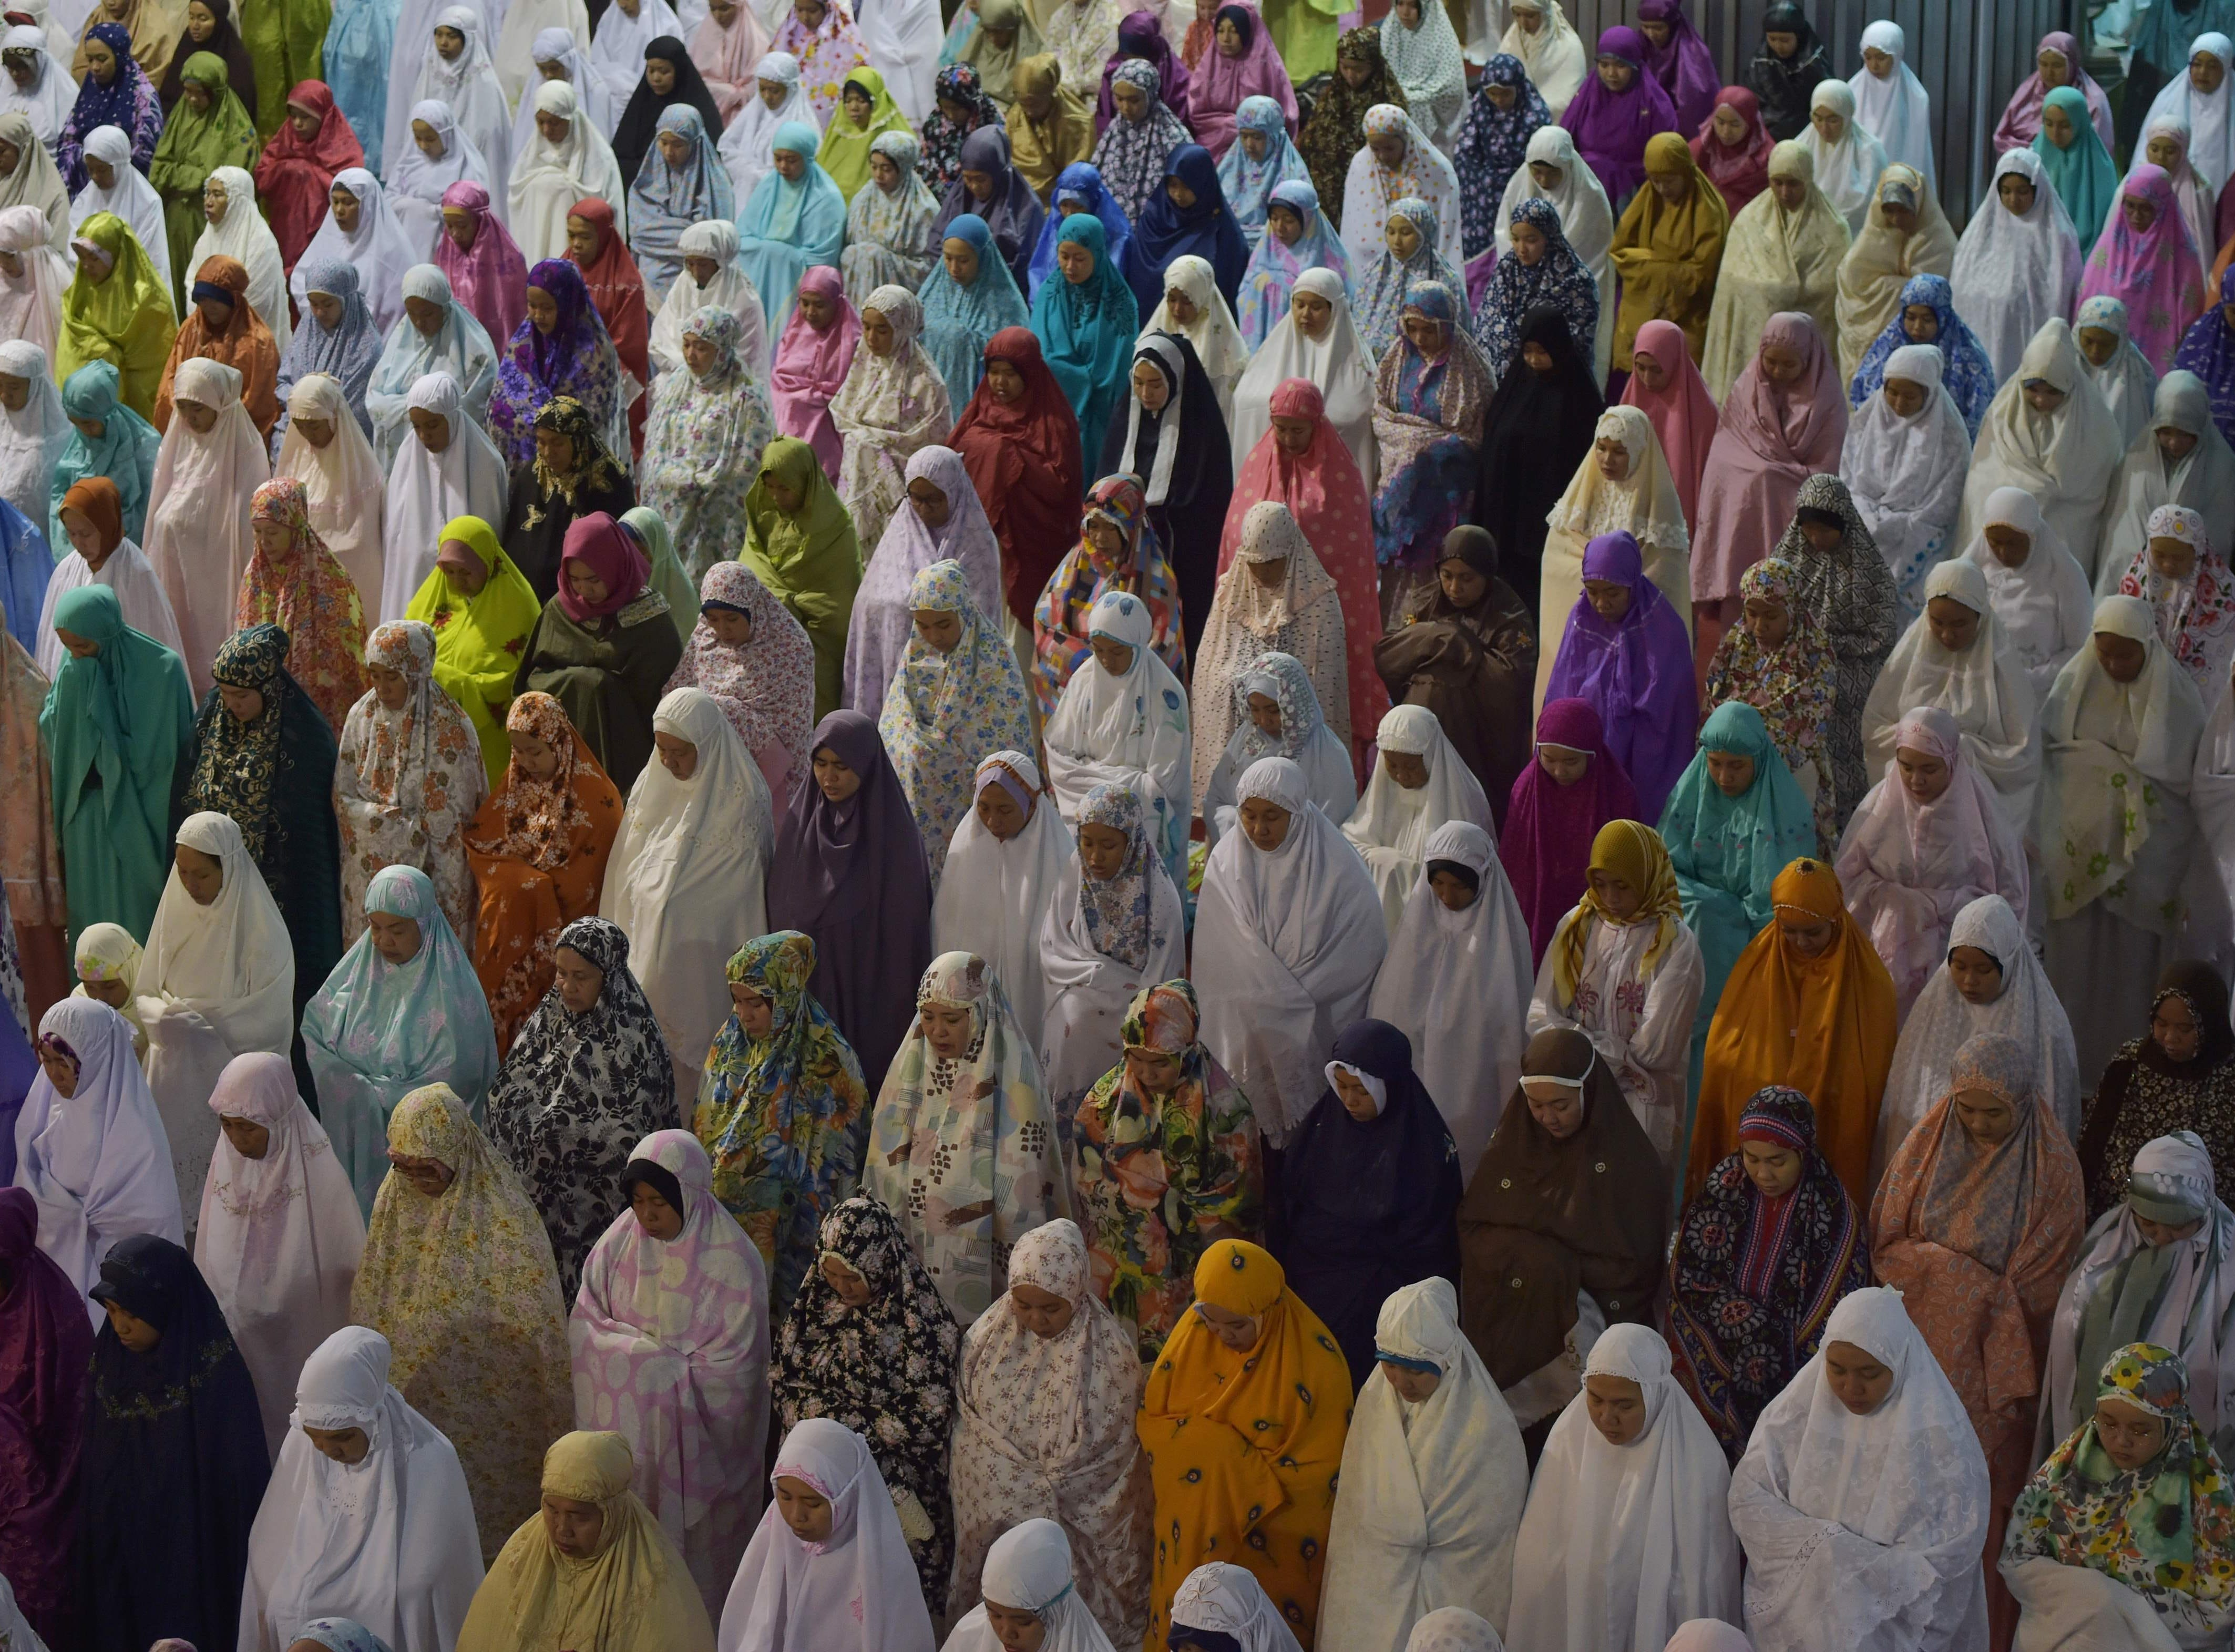 May 16, 2018: Indonesian Muslim people pray during the first night of Ramadan at Istiqlal Mosque in Jakarta. Muslim devotees are required to abstain from food, drink and sex from dawn to dusk during Ramadan.